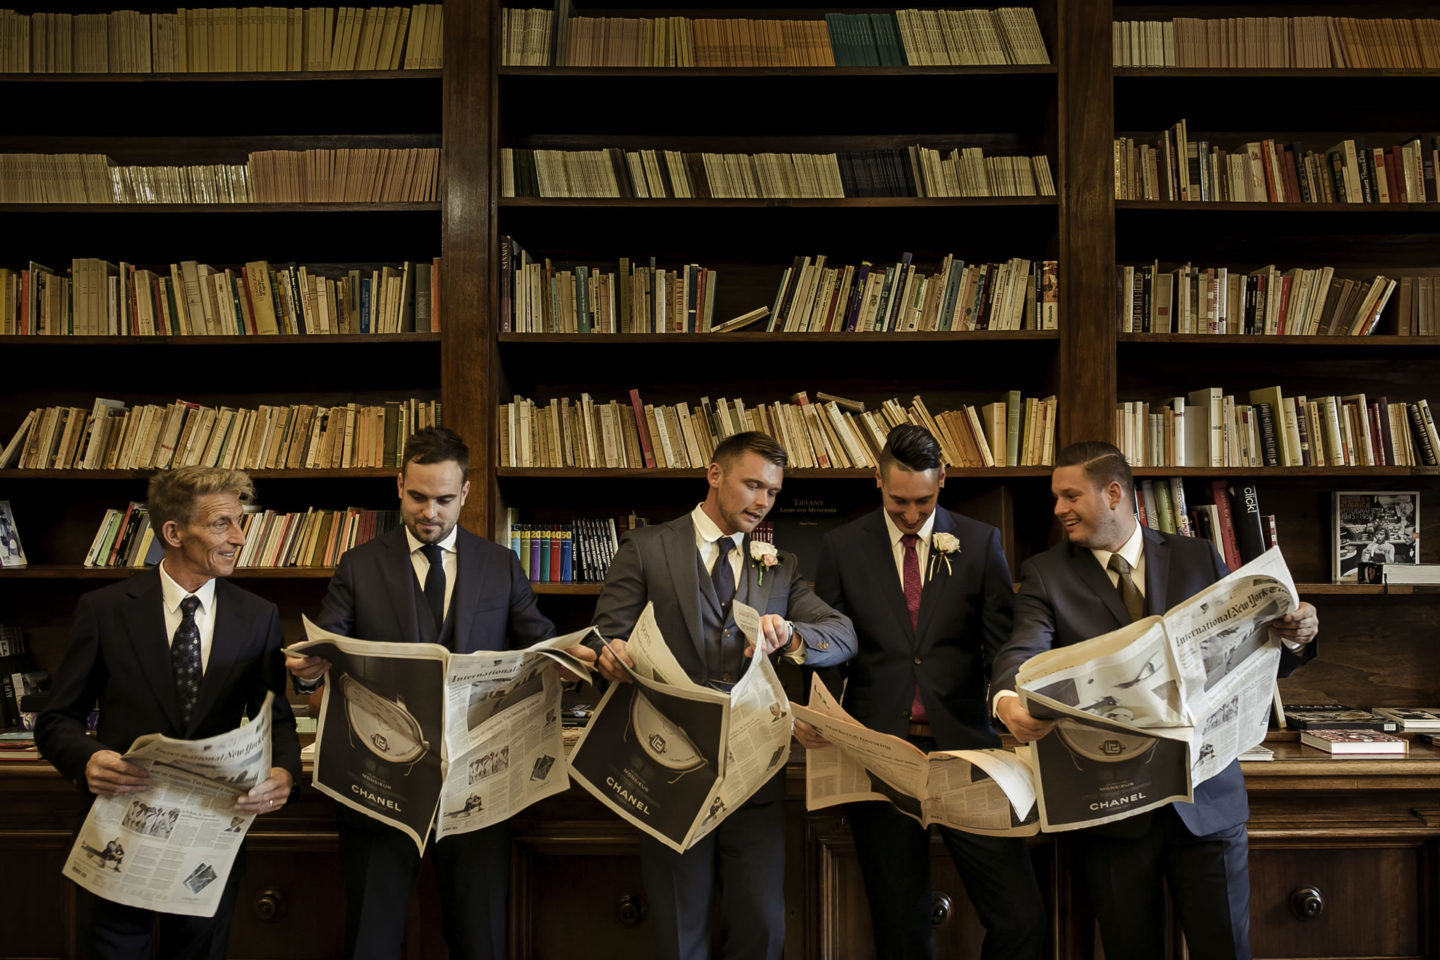 Newspapers :: Groups Bridal Parties :: David Bastianoni wedding photographer